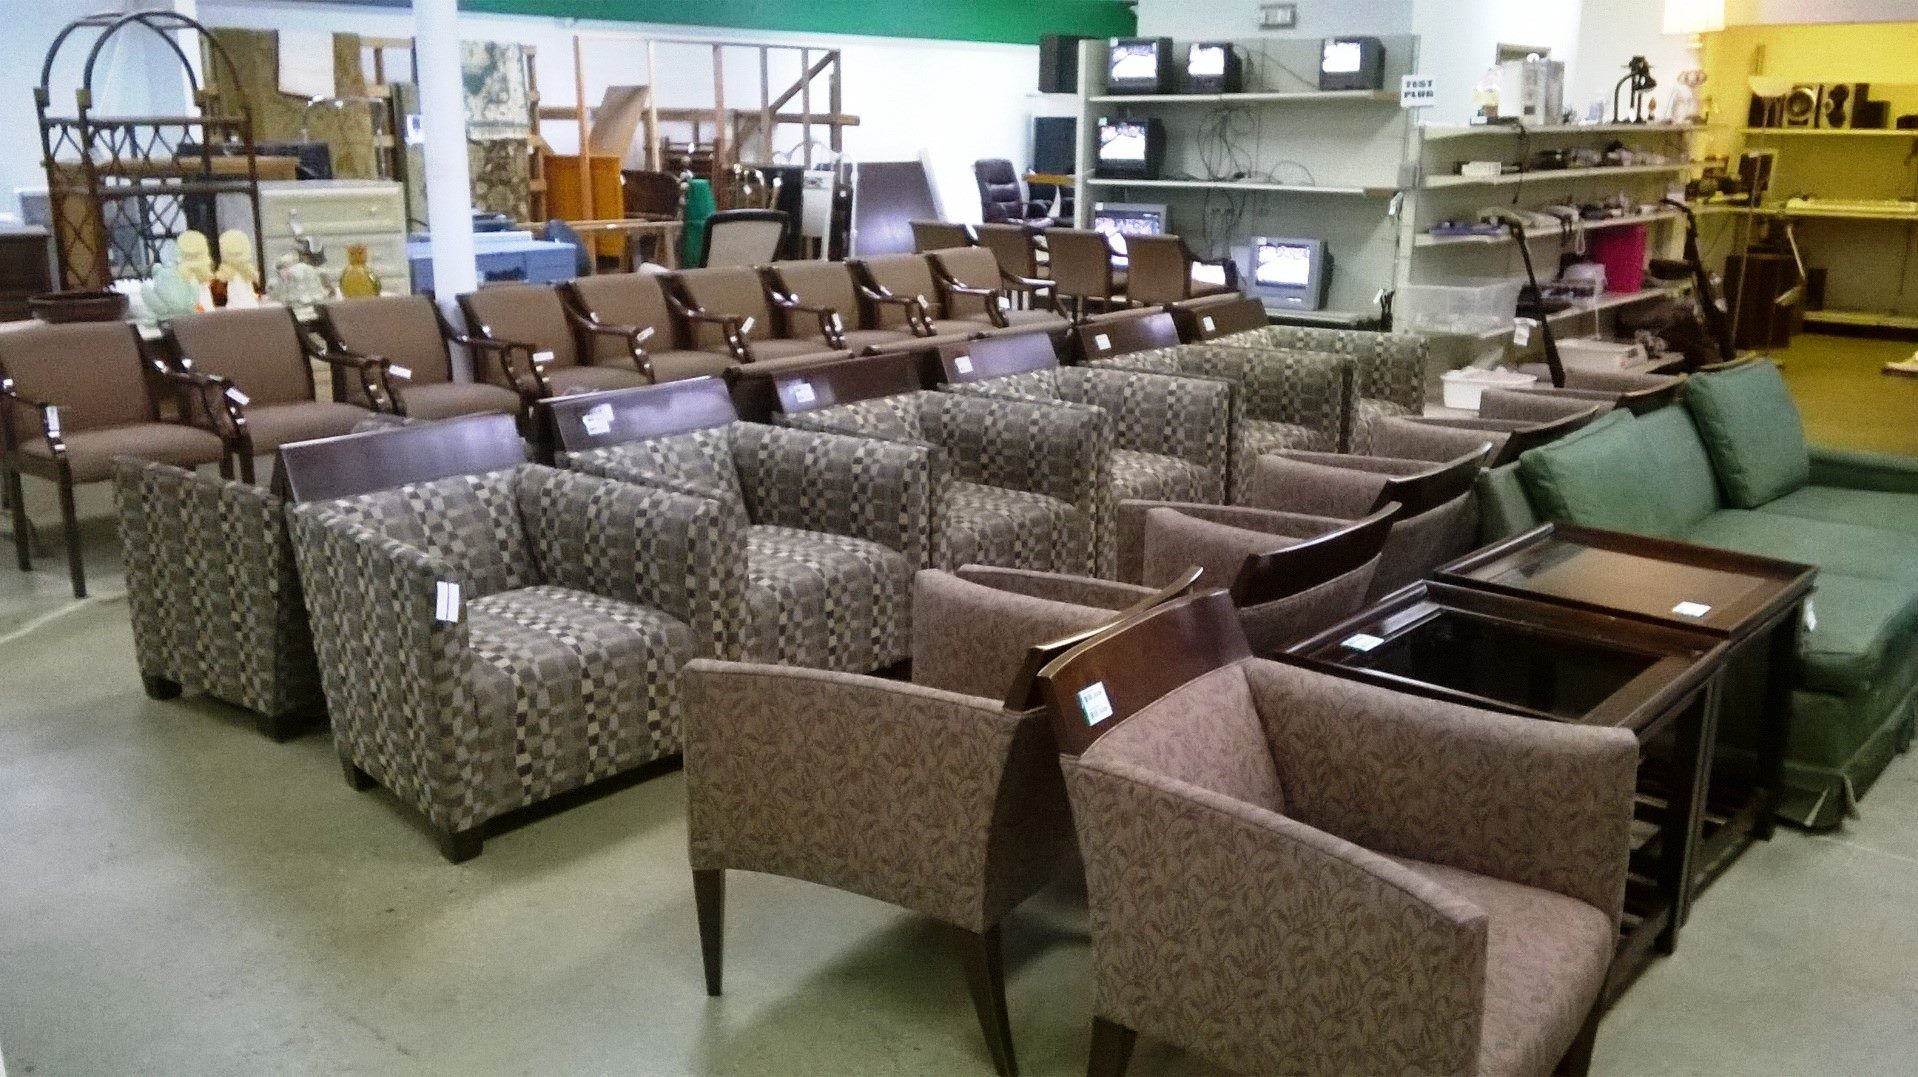 Merveilleux In Addition To Being The Store Owner, Fortenberryu0027s Father Handles The  Restoration Of All The Furniture That They Receive. Fortenberry Refurbishes  All Of ...